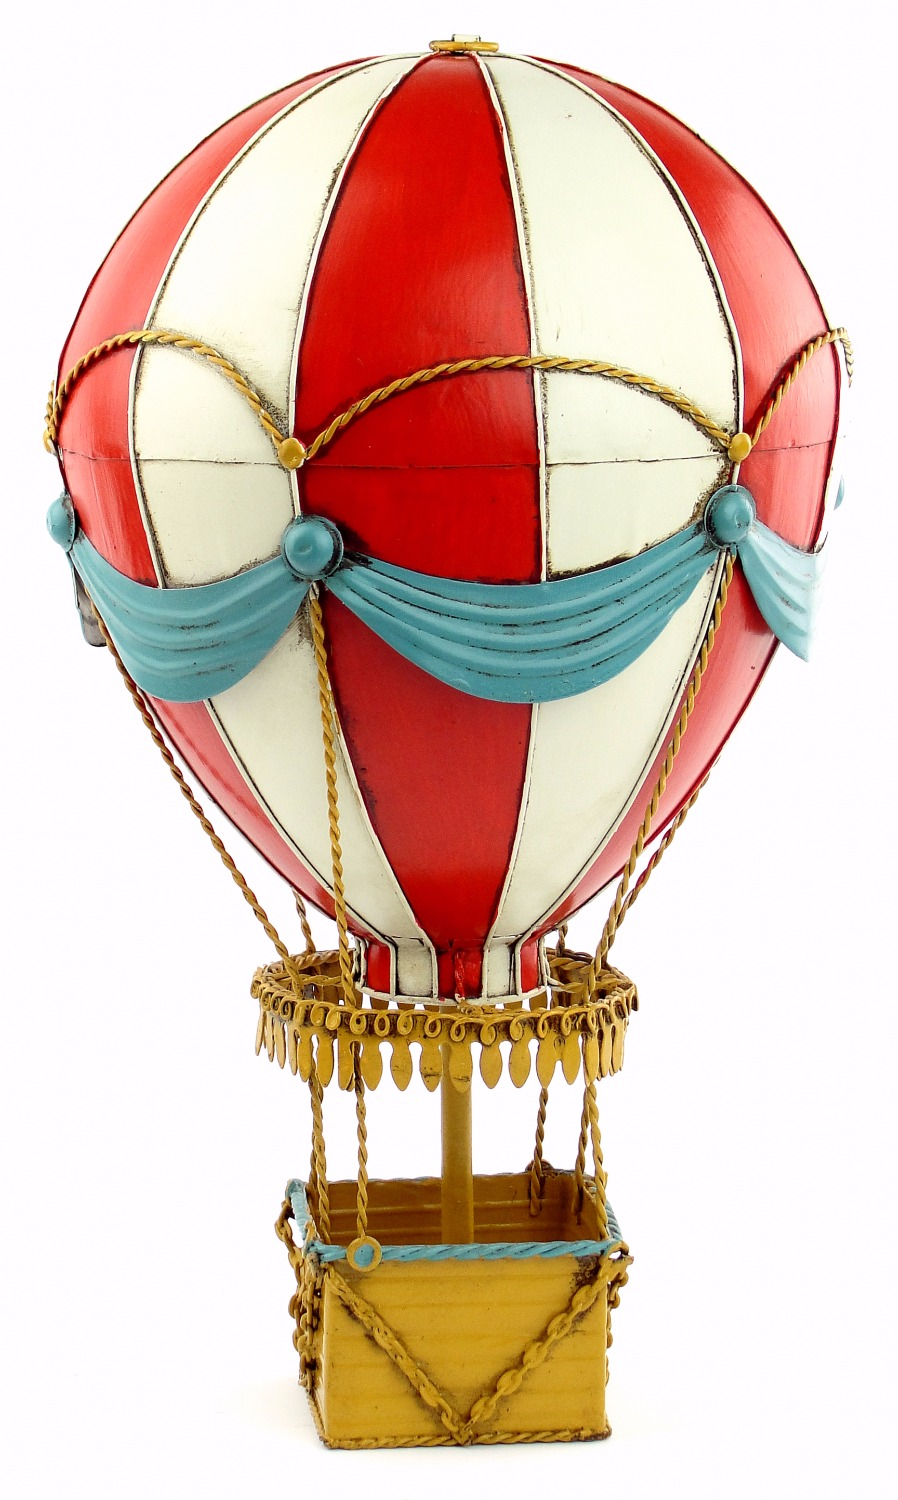 In the 19th century fire balloon model Home Furnishing bar restaurant decoration accessories creative decoration-in Figurines & Miniatures from Home & Garden    1